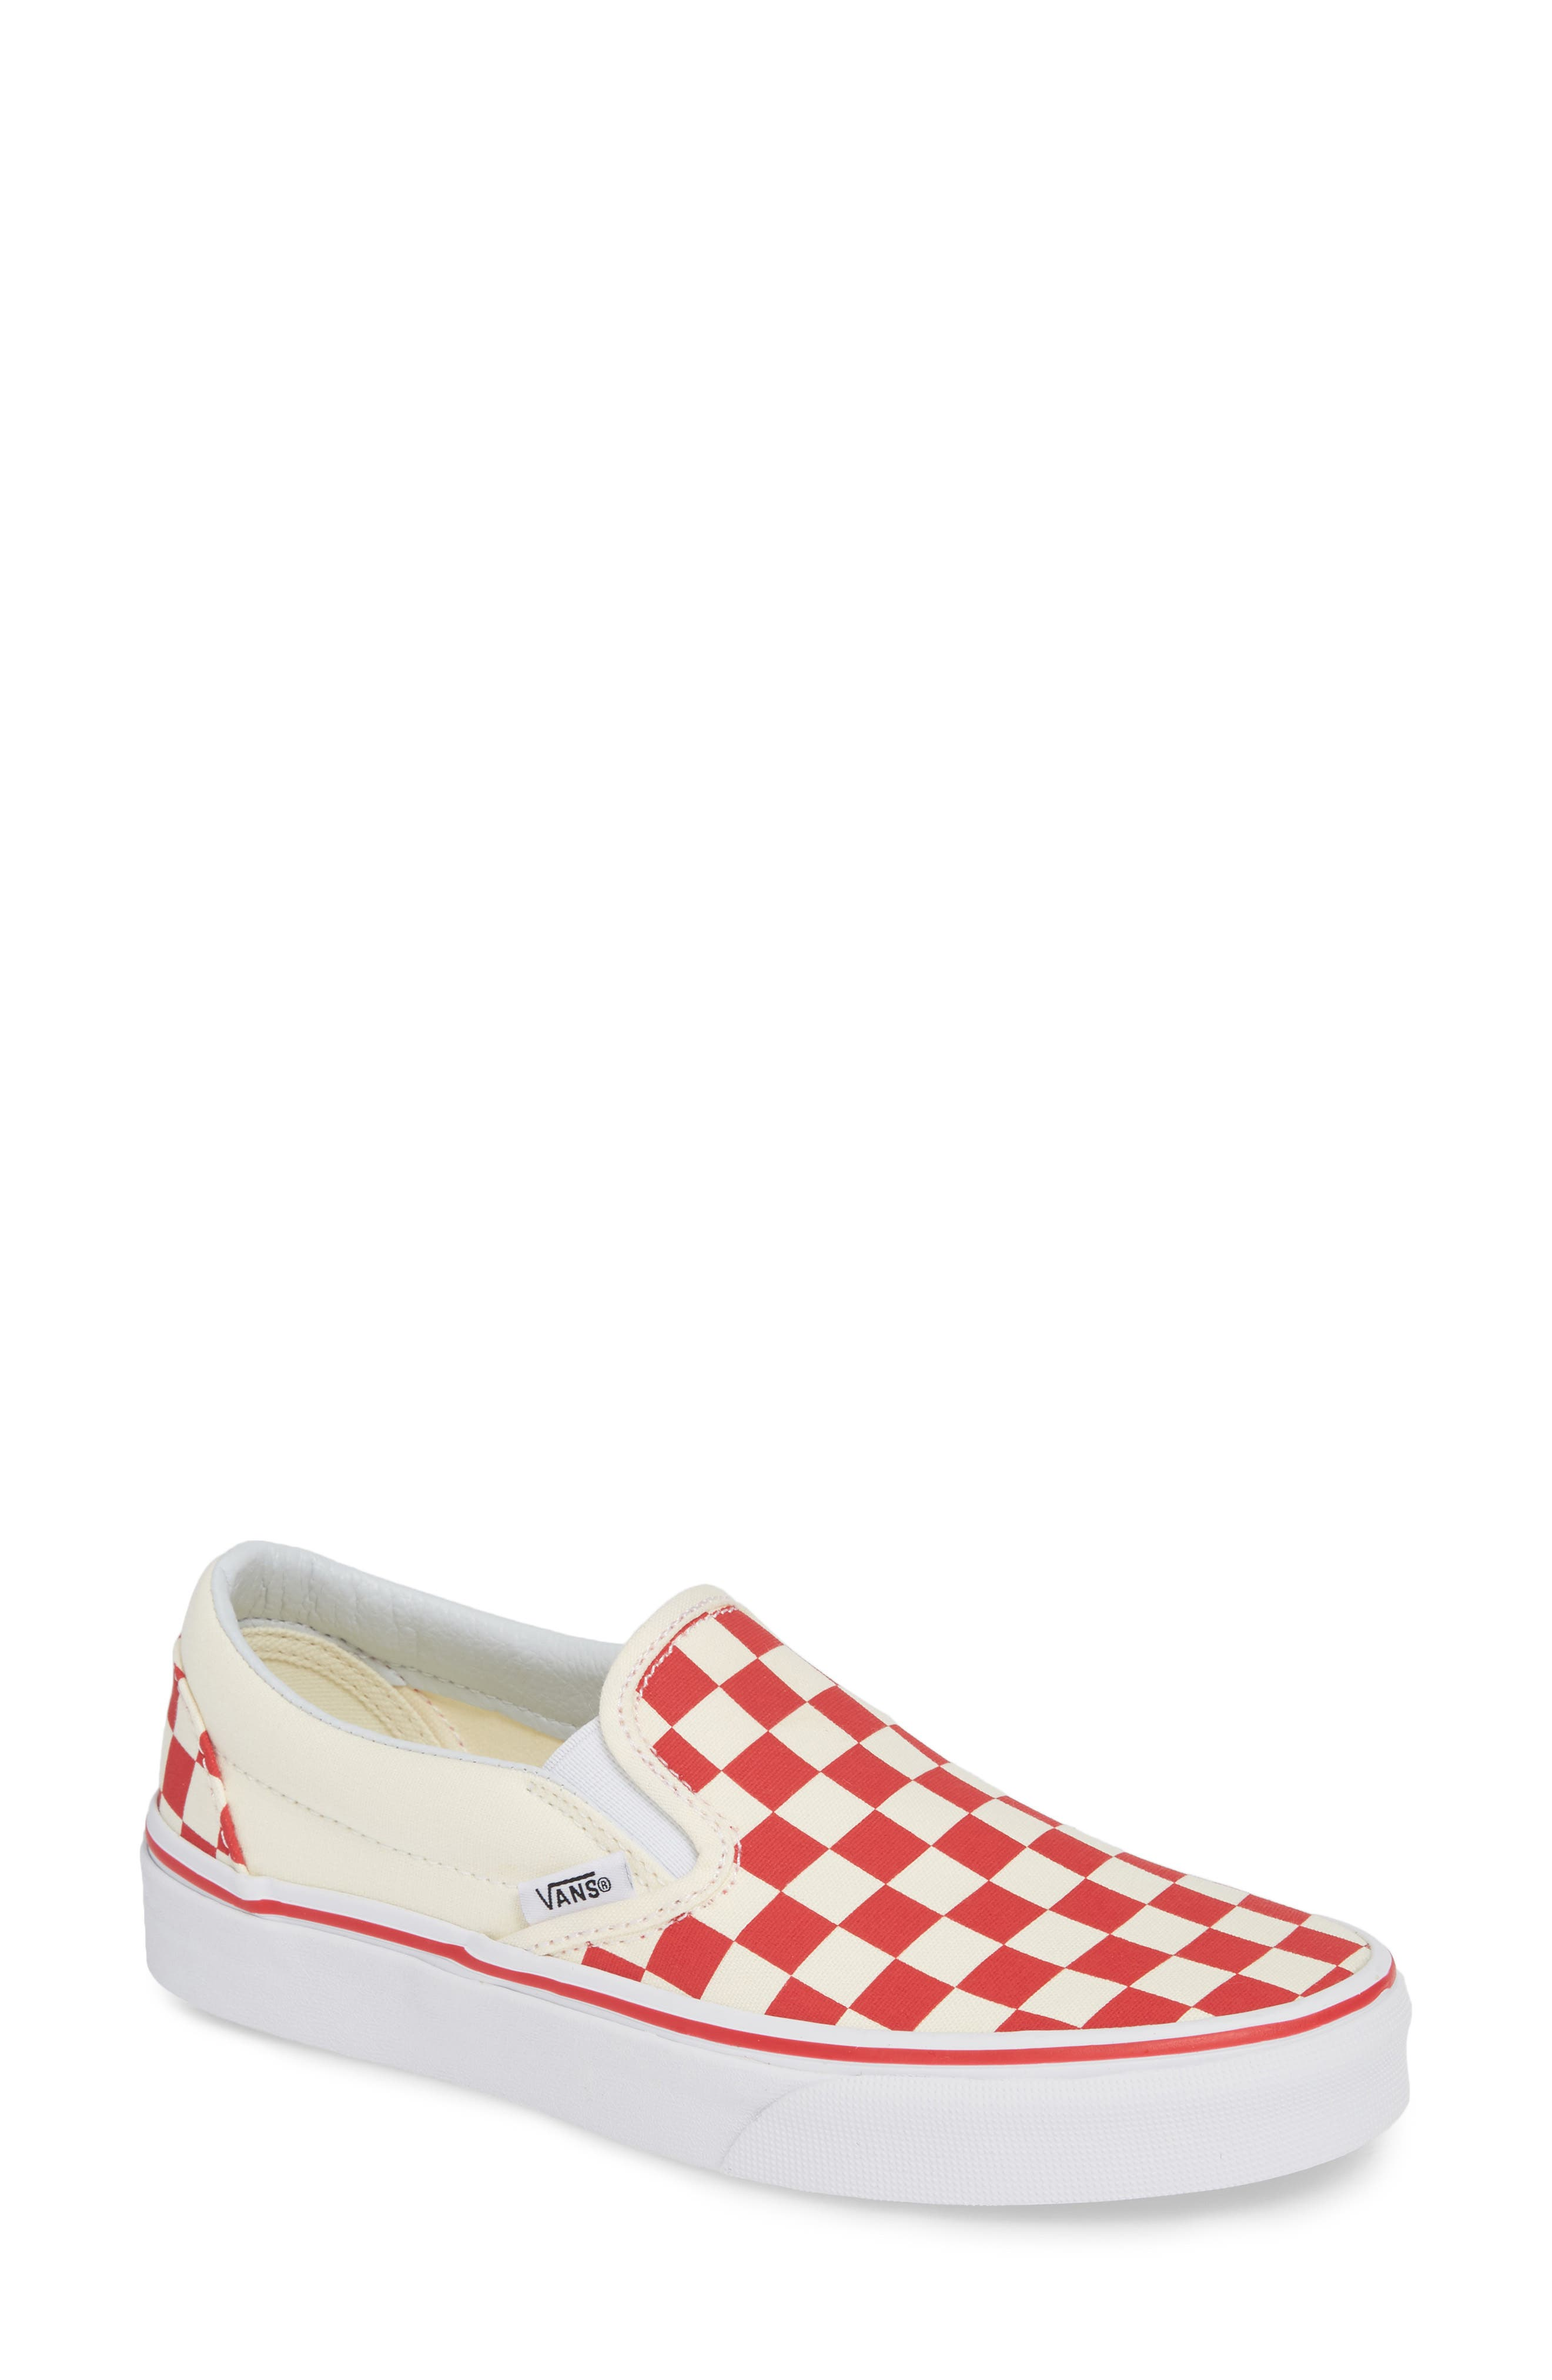 VANS 'Classic' Slip-On, Main, color, RACING RED/ WHITE